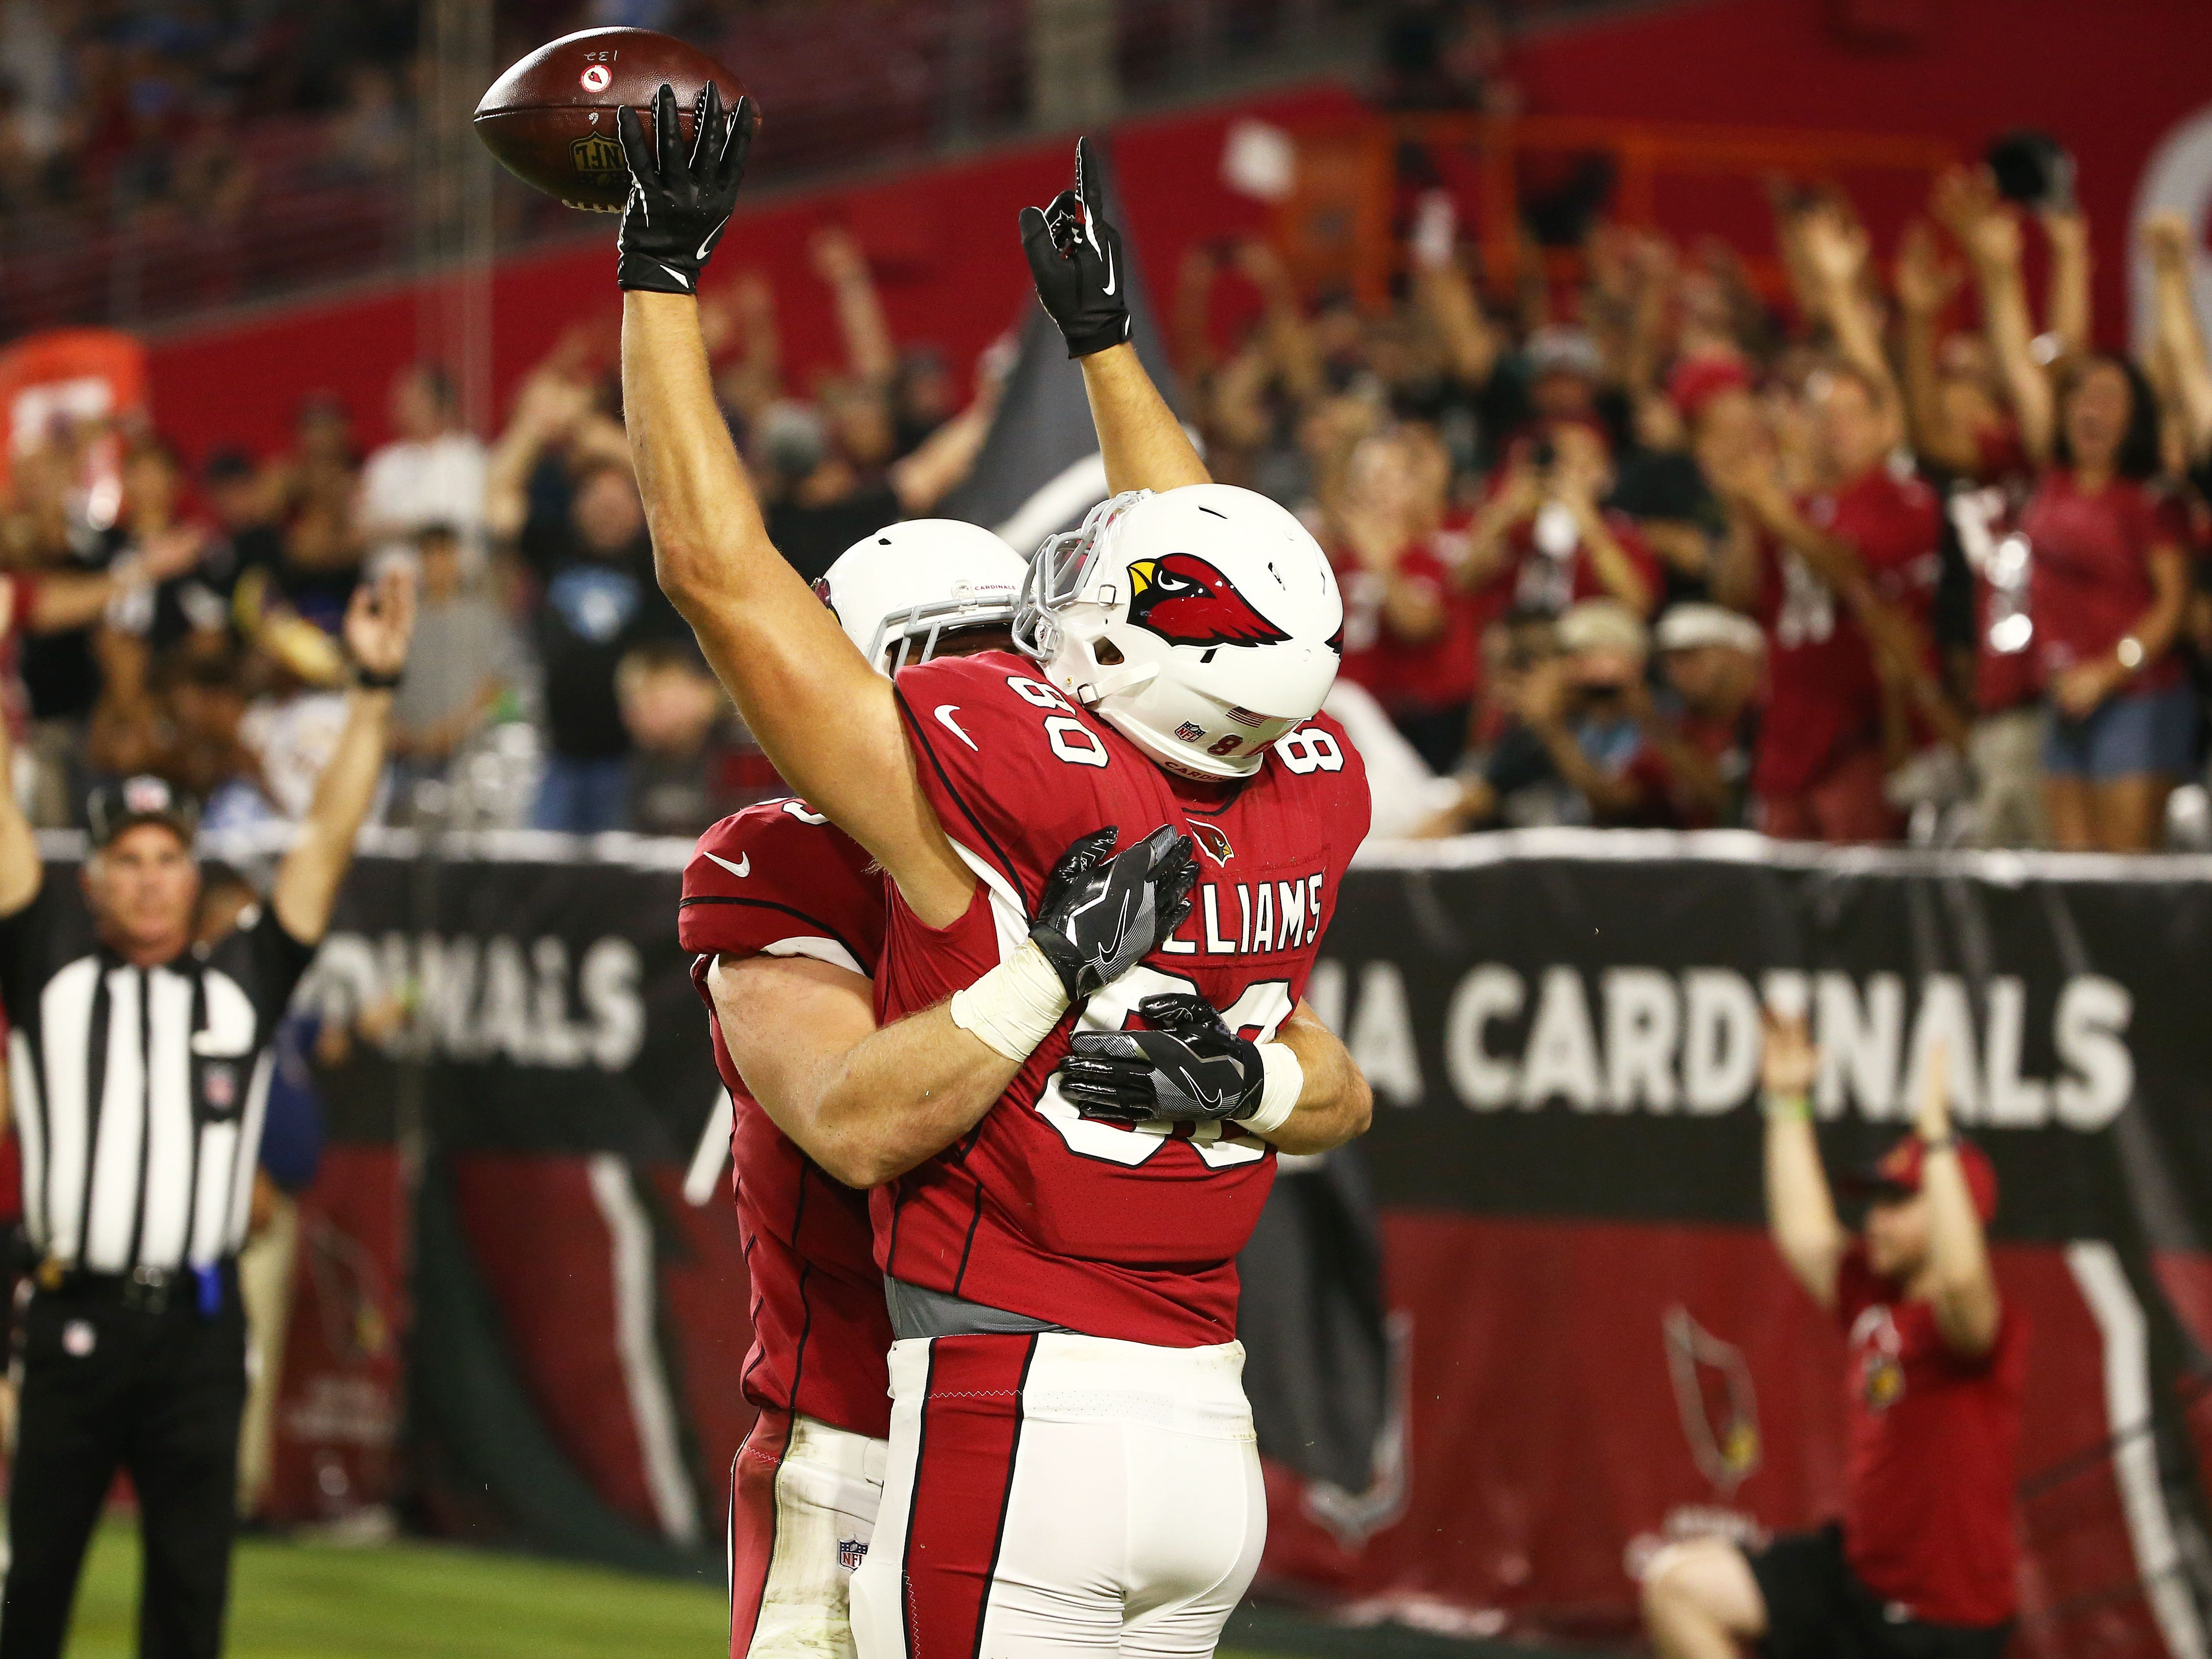 Arizona Cardinals Bryce Williams (80) celebrates his touchdown catch against the L.A. Chargers in the second half during a preseason NFL football game on Aug. 11, 2018 at University of Phoenix Stadium in Glendale, Ariz.